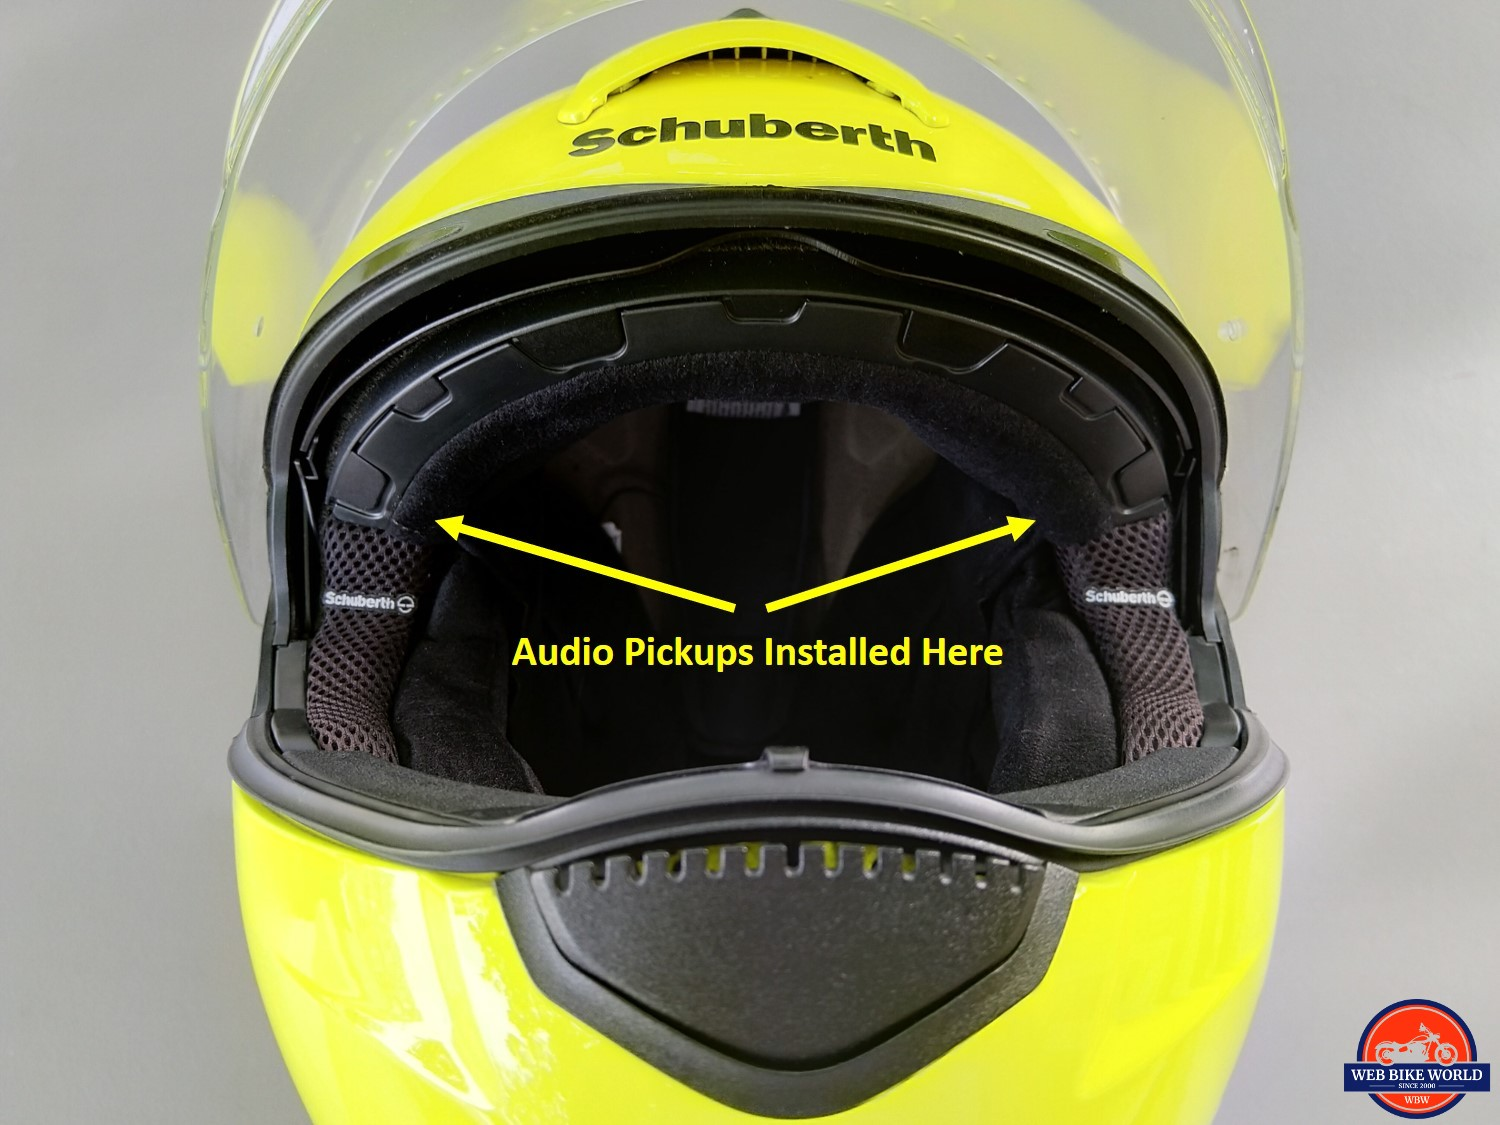 UClear Motion 6 on Schuberth C3 - Audio Pickup Installation Spots